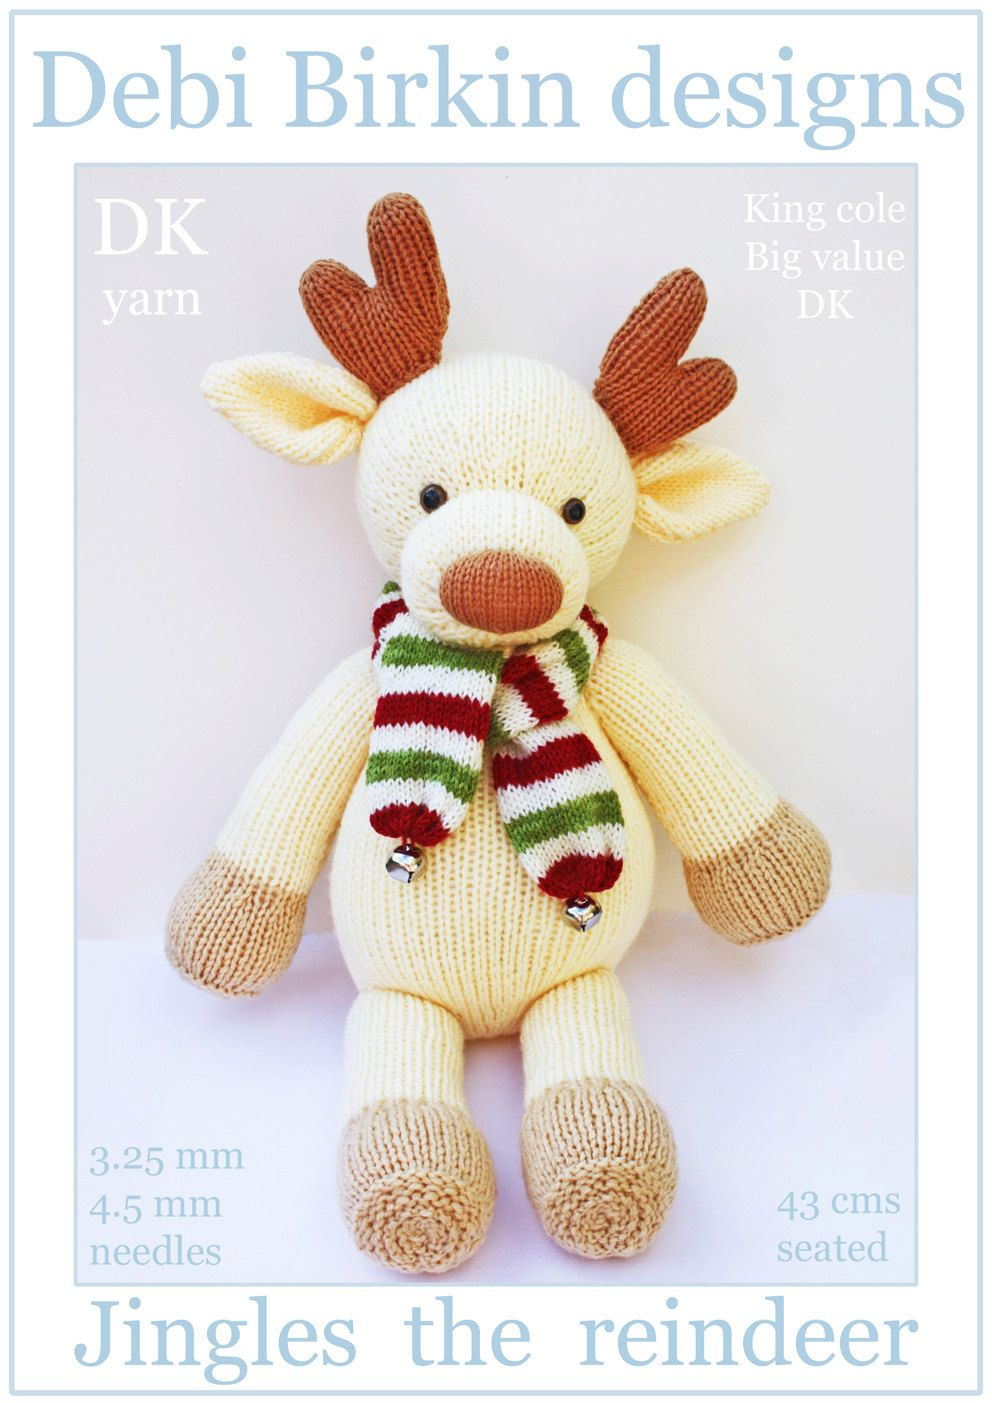 Jingles reindeer pdf email toy knitting pattern moose deer bambi jingles reindeer pdf email toy knitting pattern moose deer bambi bankloansurffo Choice Image